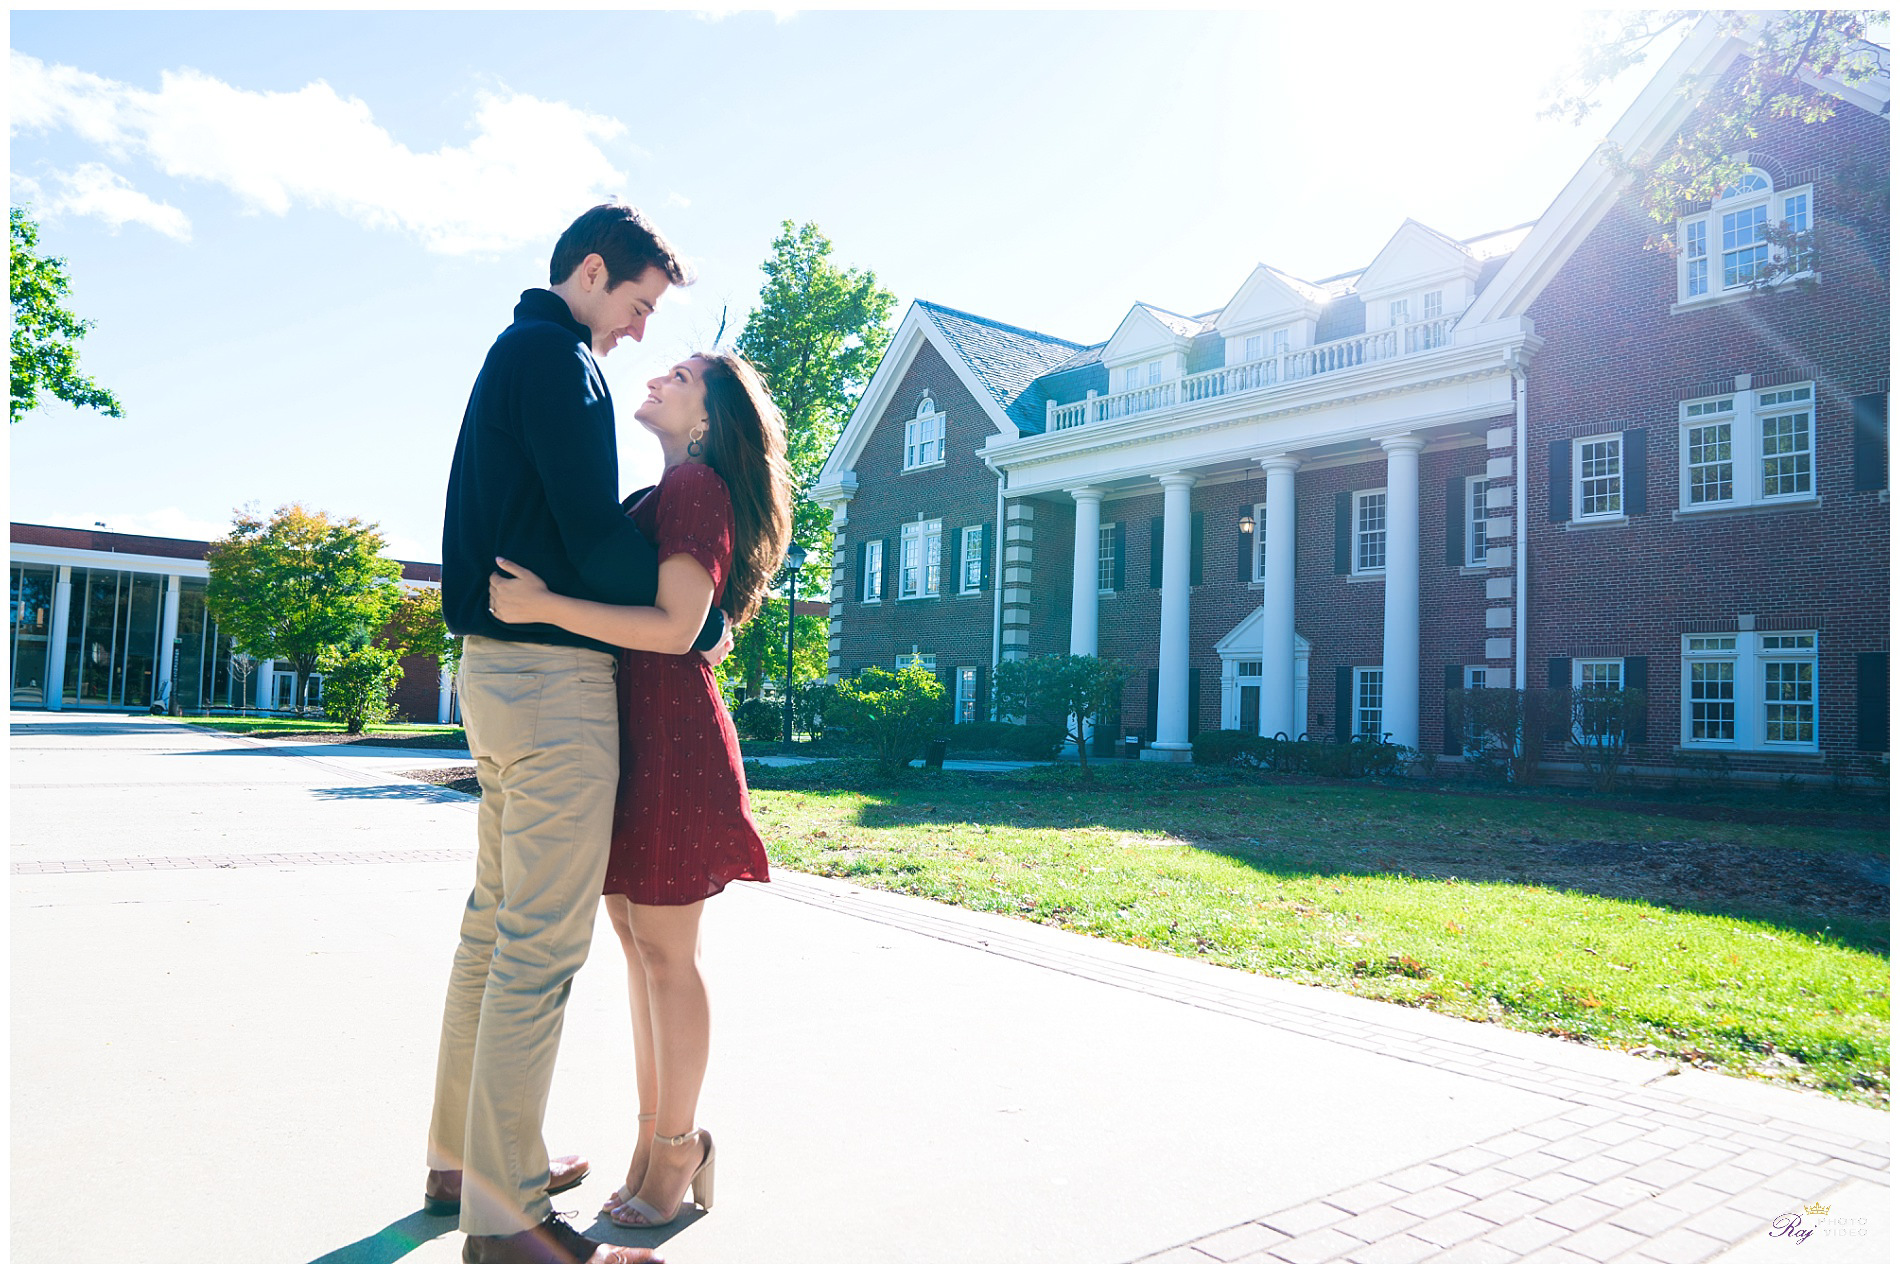 The-College-of-New-Jersey-Engagement-Shoot-Prerna-Kevin15.jpg